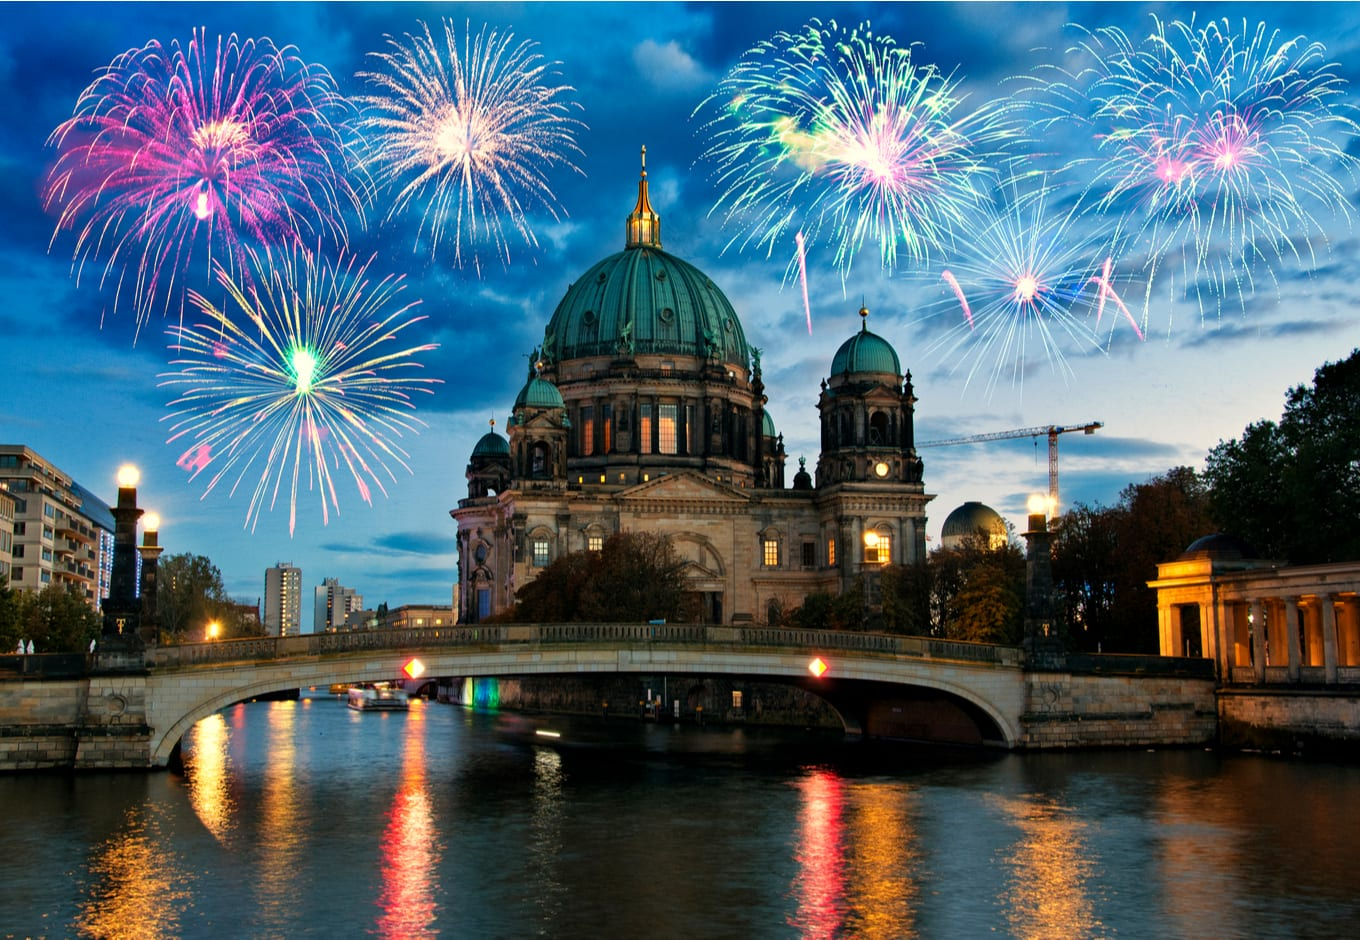 Fireworks over Berliner Cathedral in Berlin, Germany.